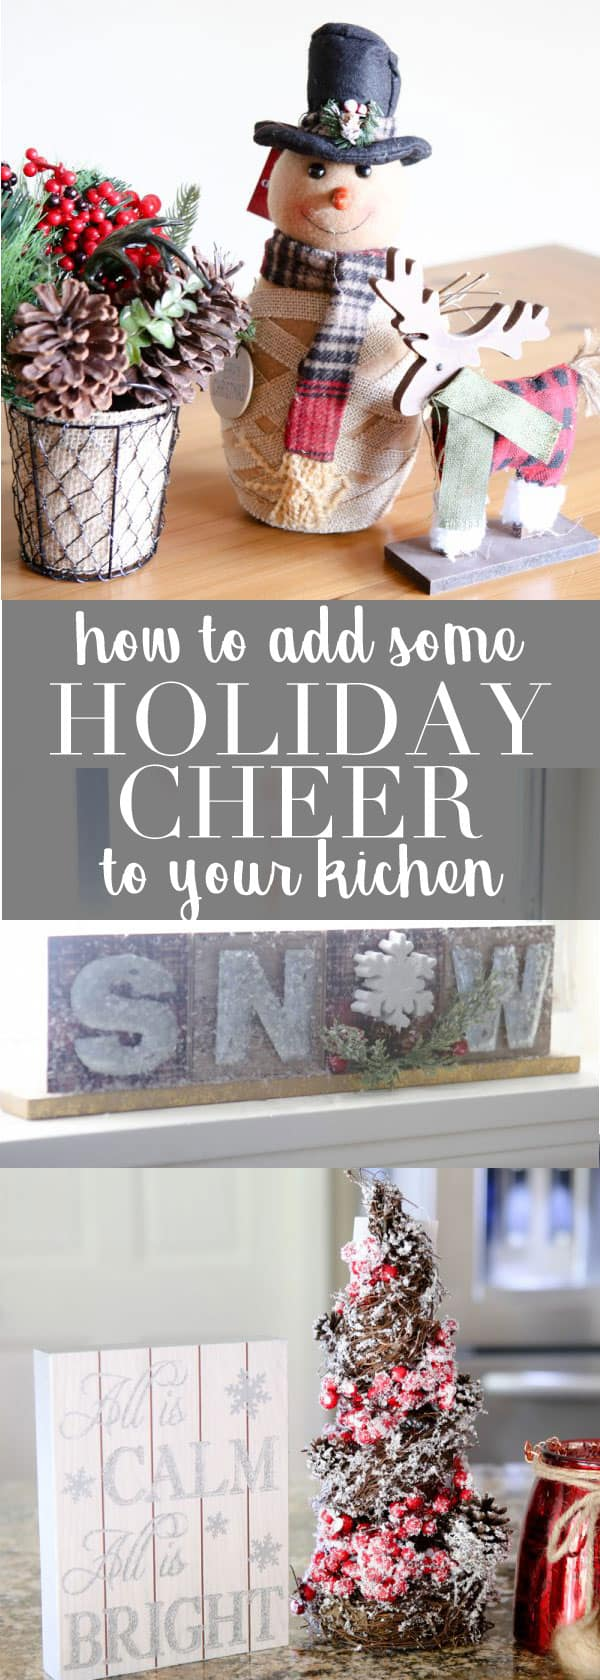 How to Add Some Holiday Cheer to Your Kitchen This Year Recipe